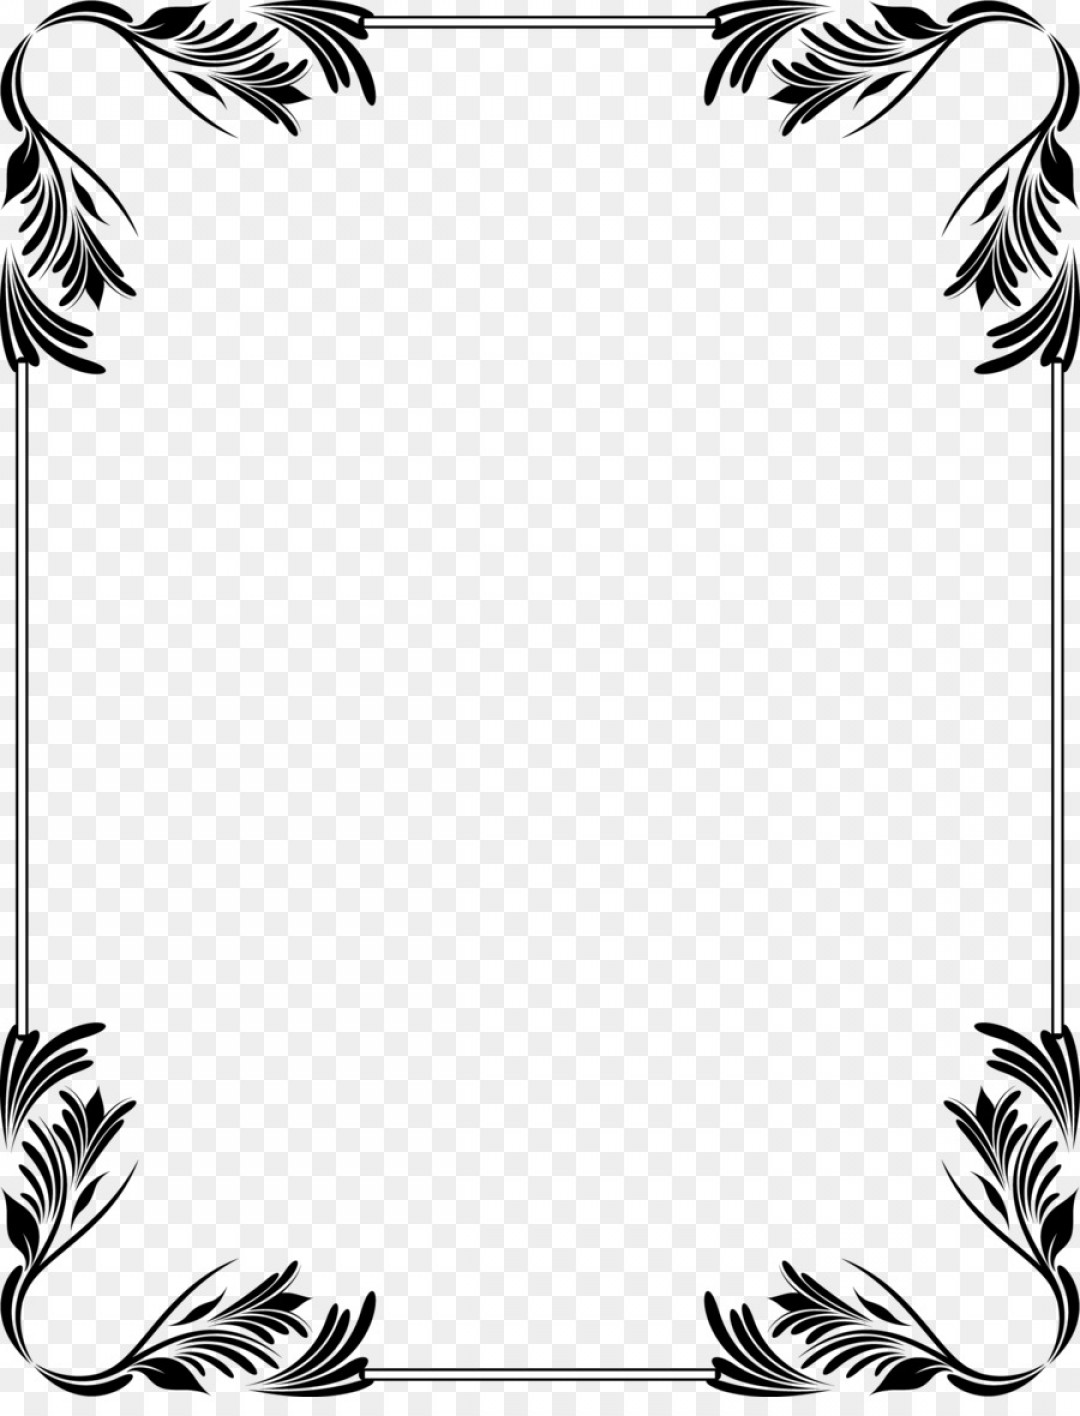 1080x1416 Png Coreldraw Clip Art Vector Frame Rongholland